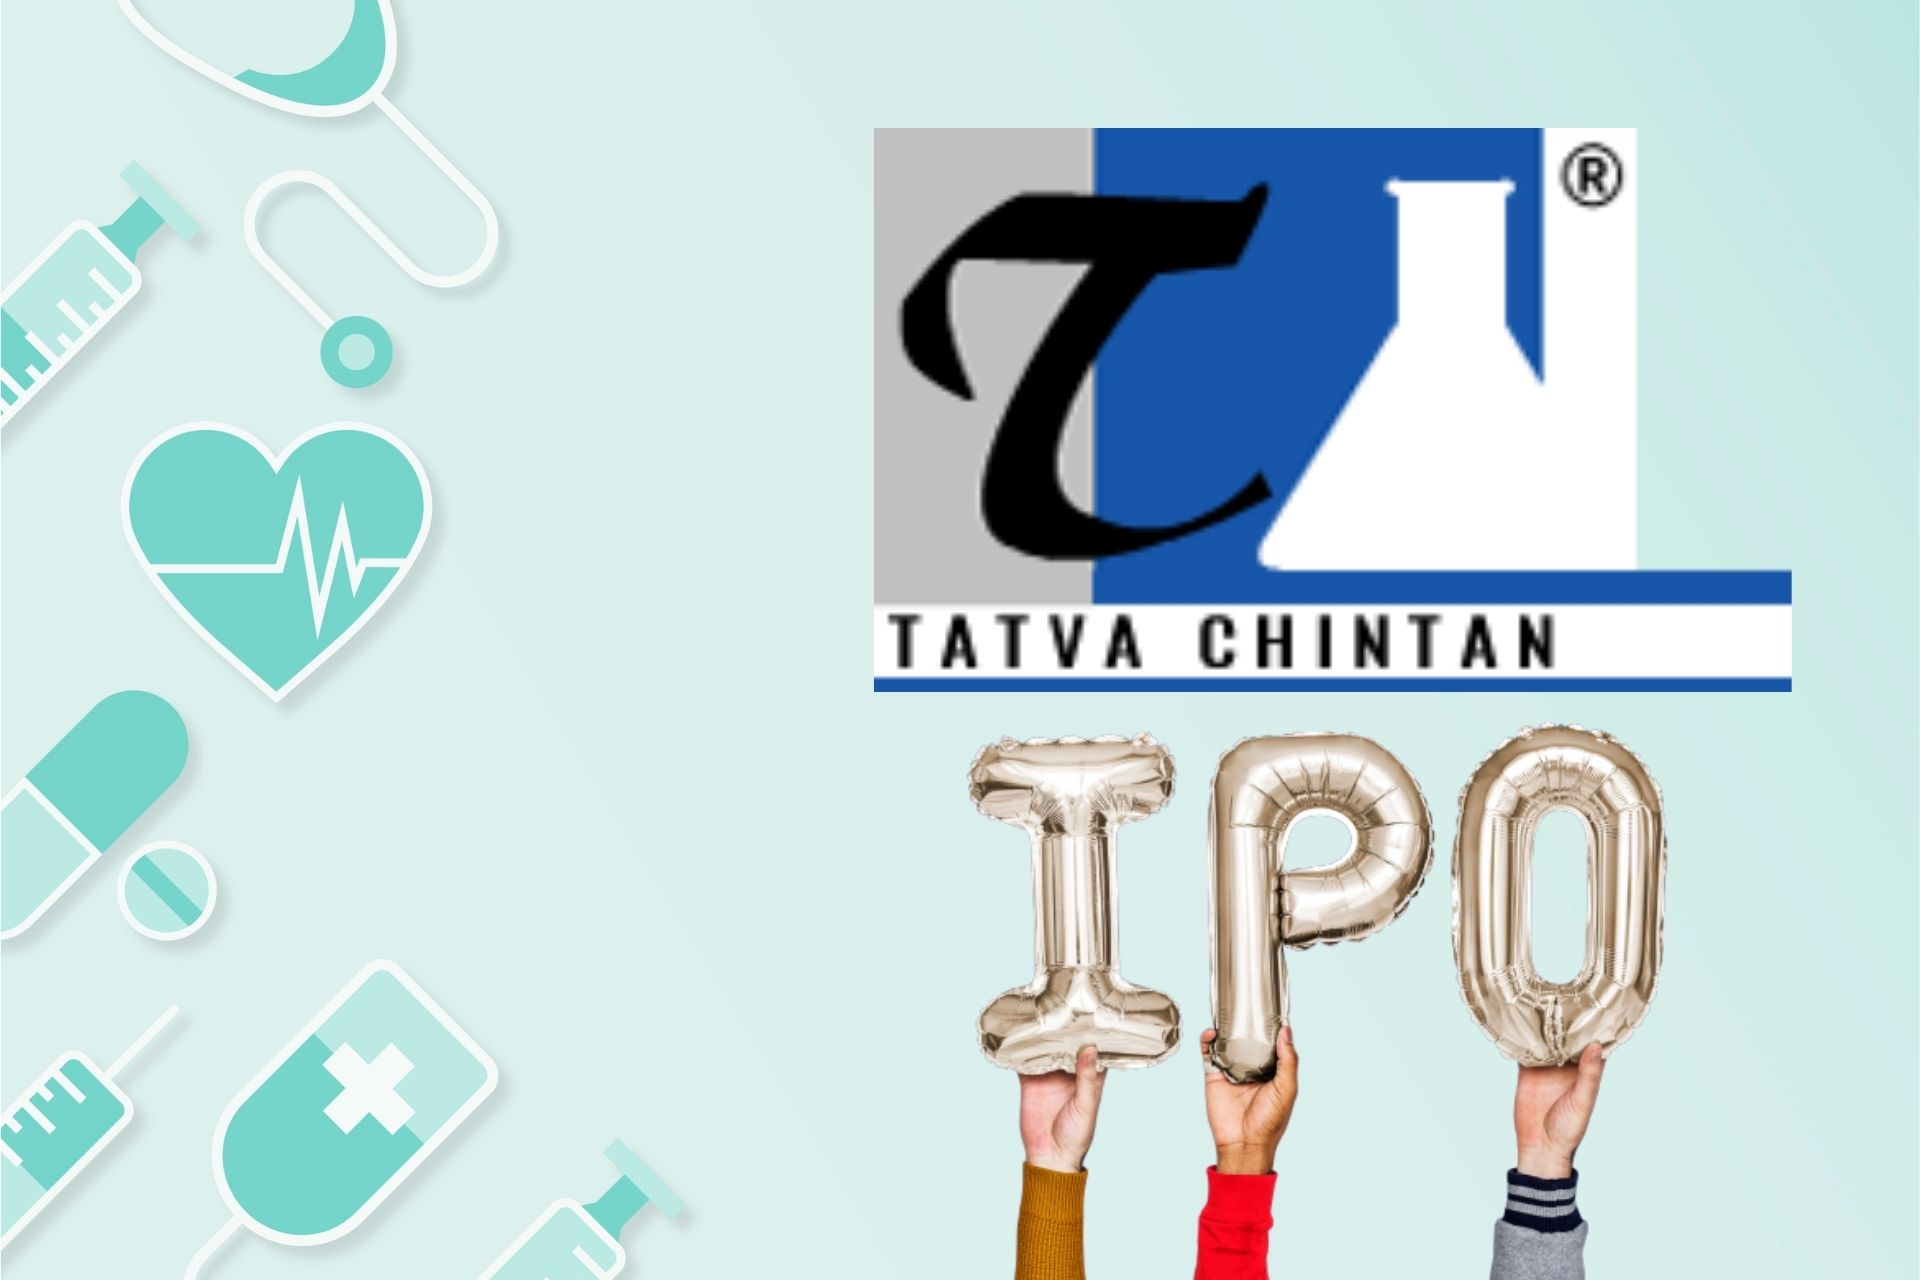 Tatva Chintan IPO Review 2021 – IPO Date, Offer Price & Details!